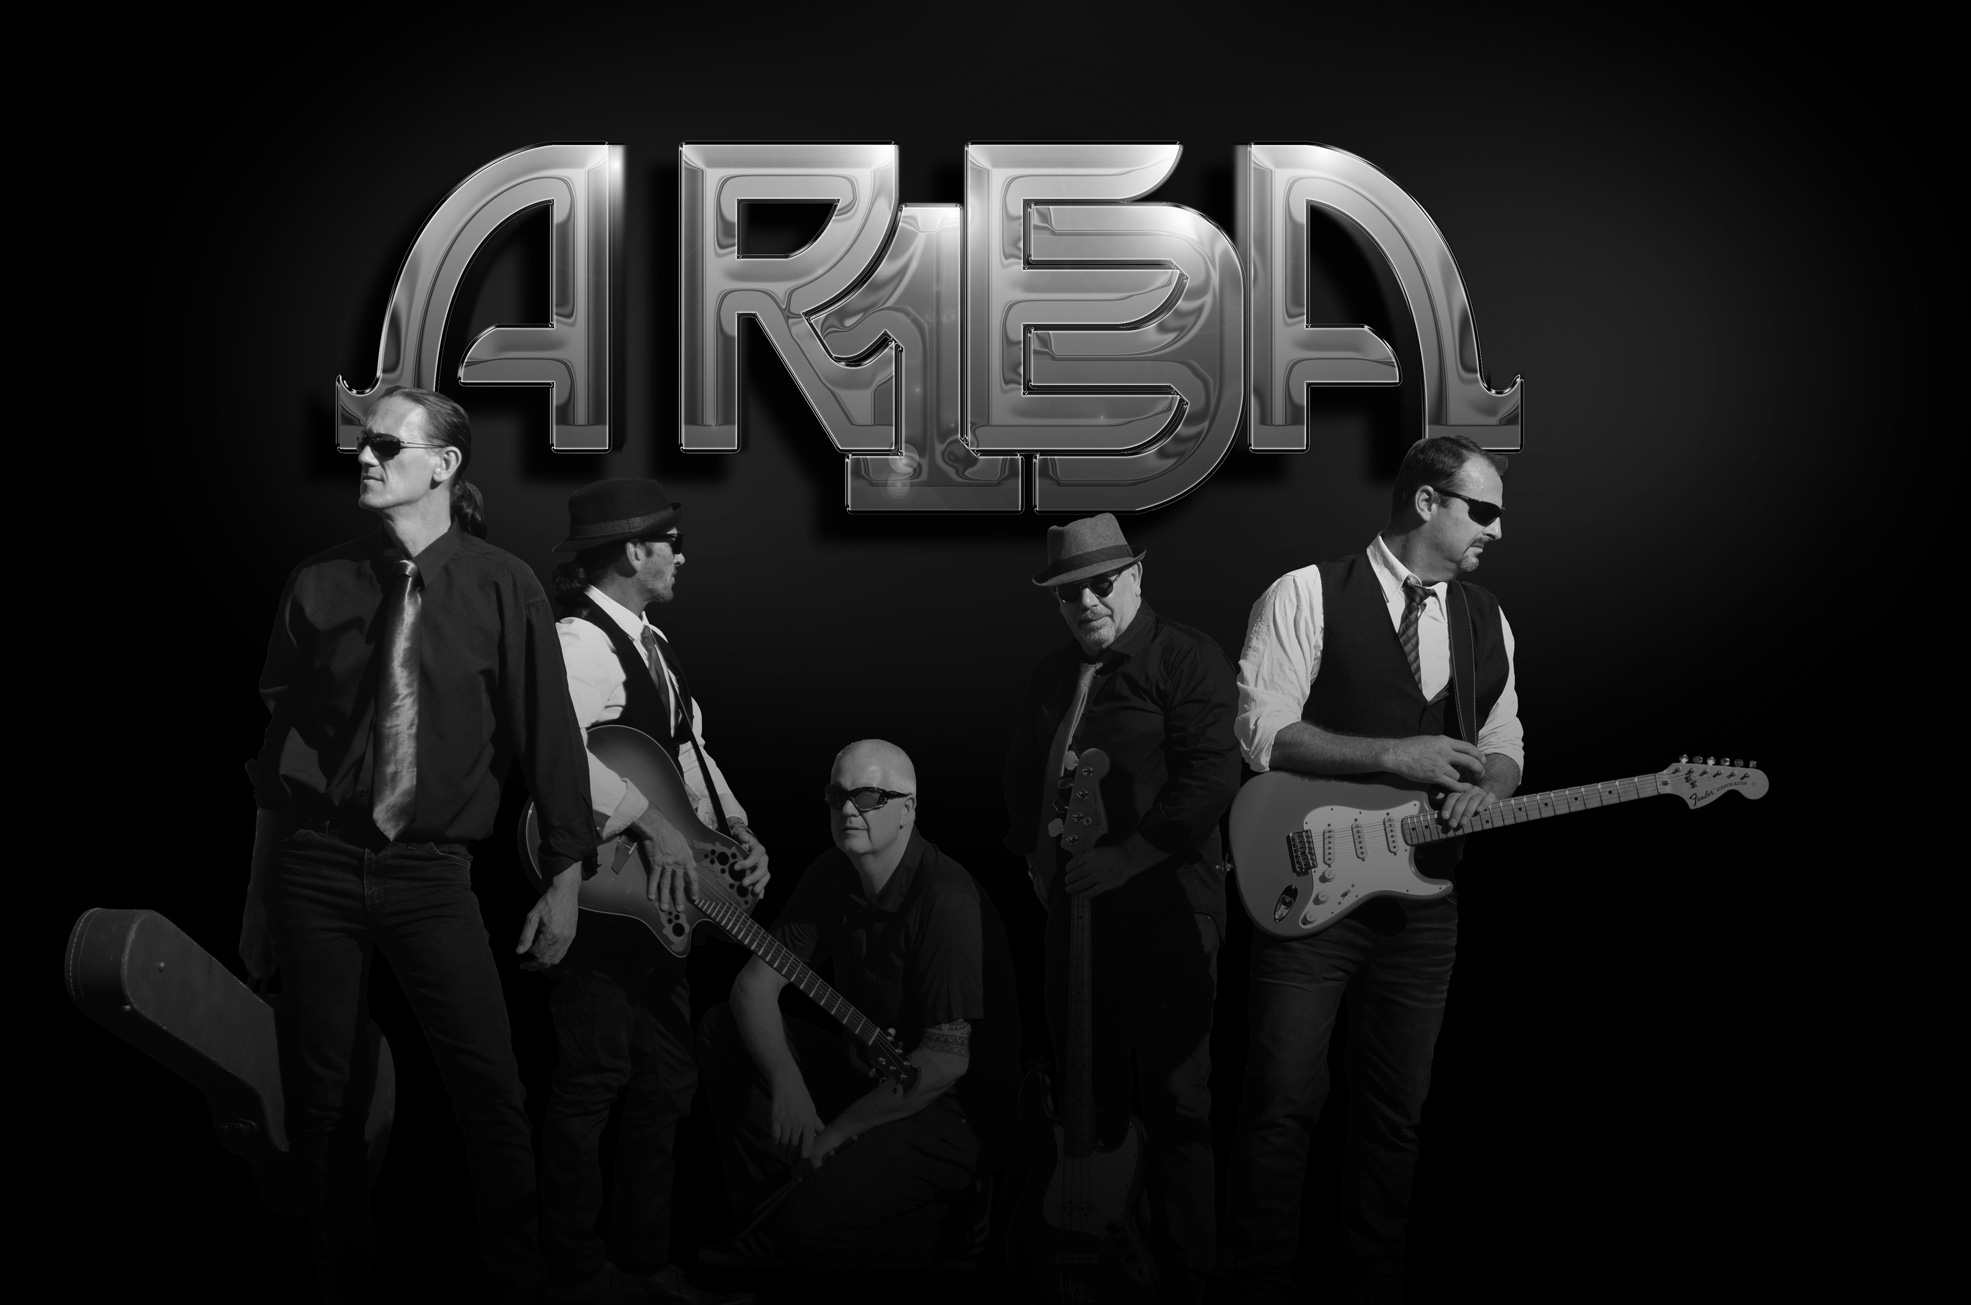 area-13-band-black-and-white-full-image-alternate